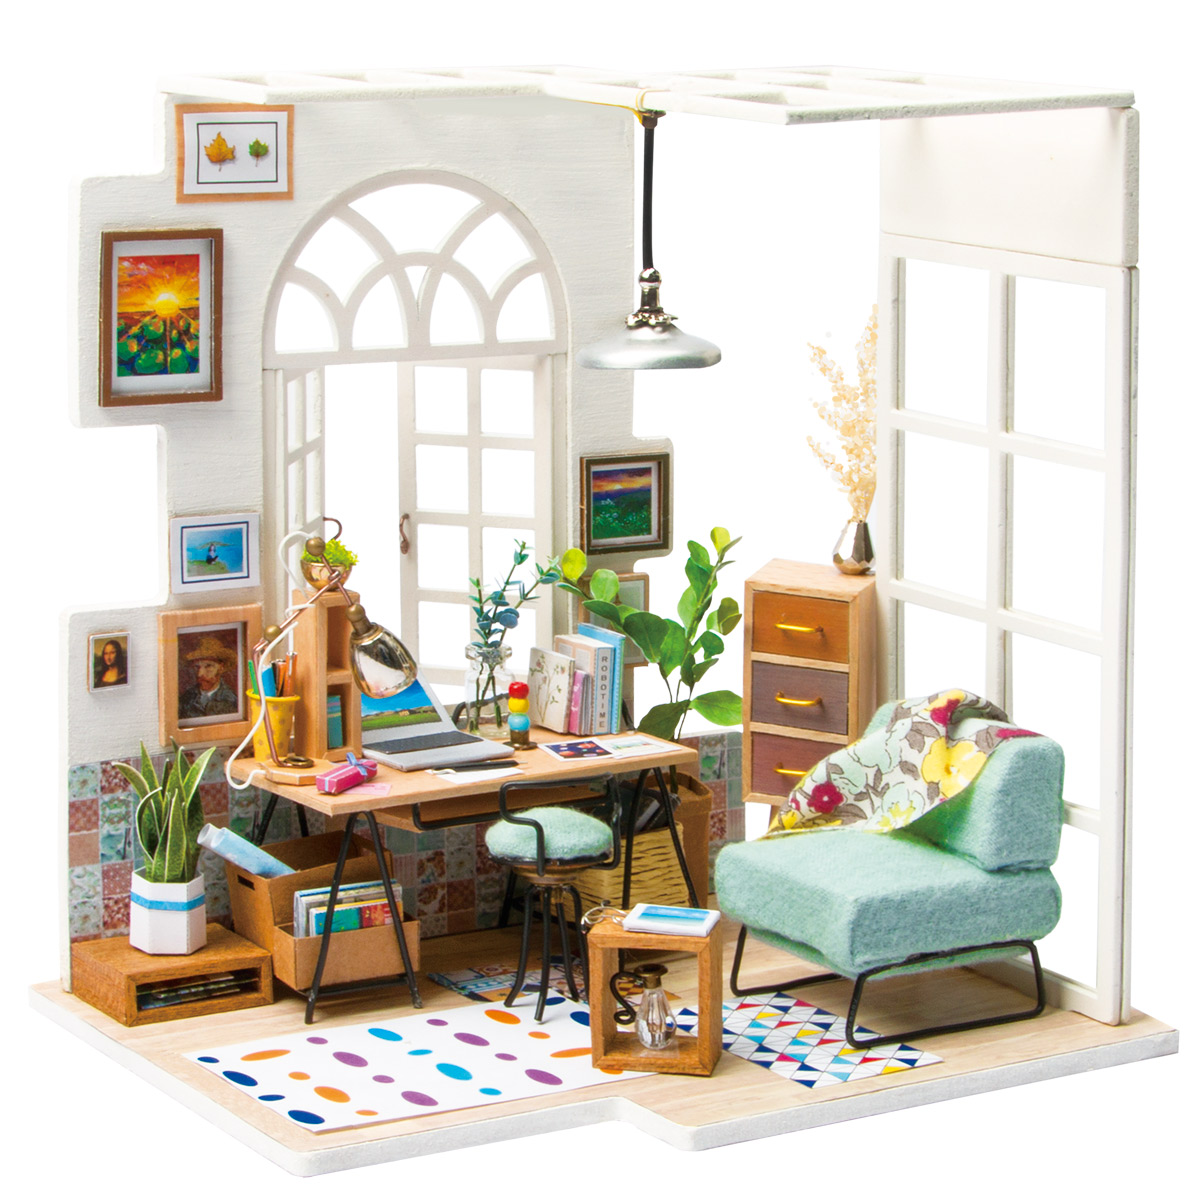 Rolife Miniature Dollhouse DGM01 SOHO Time as a beautiful home decor